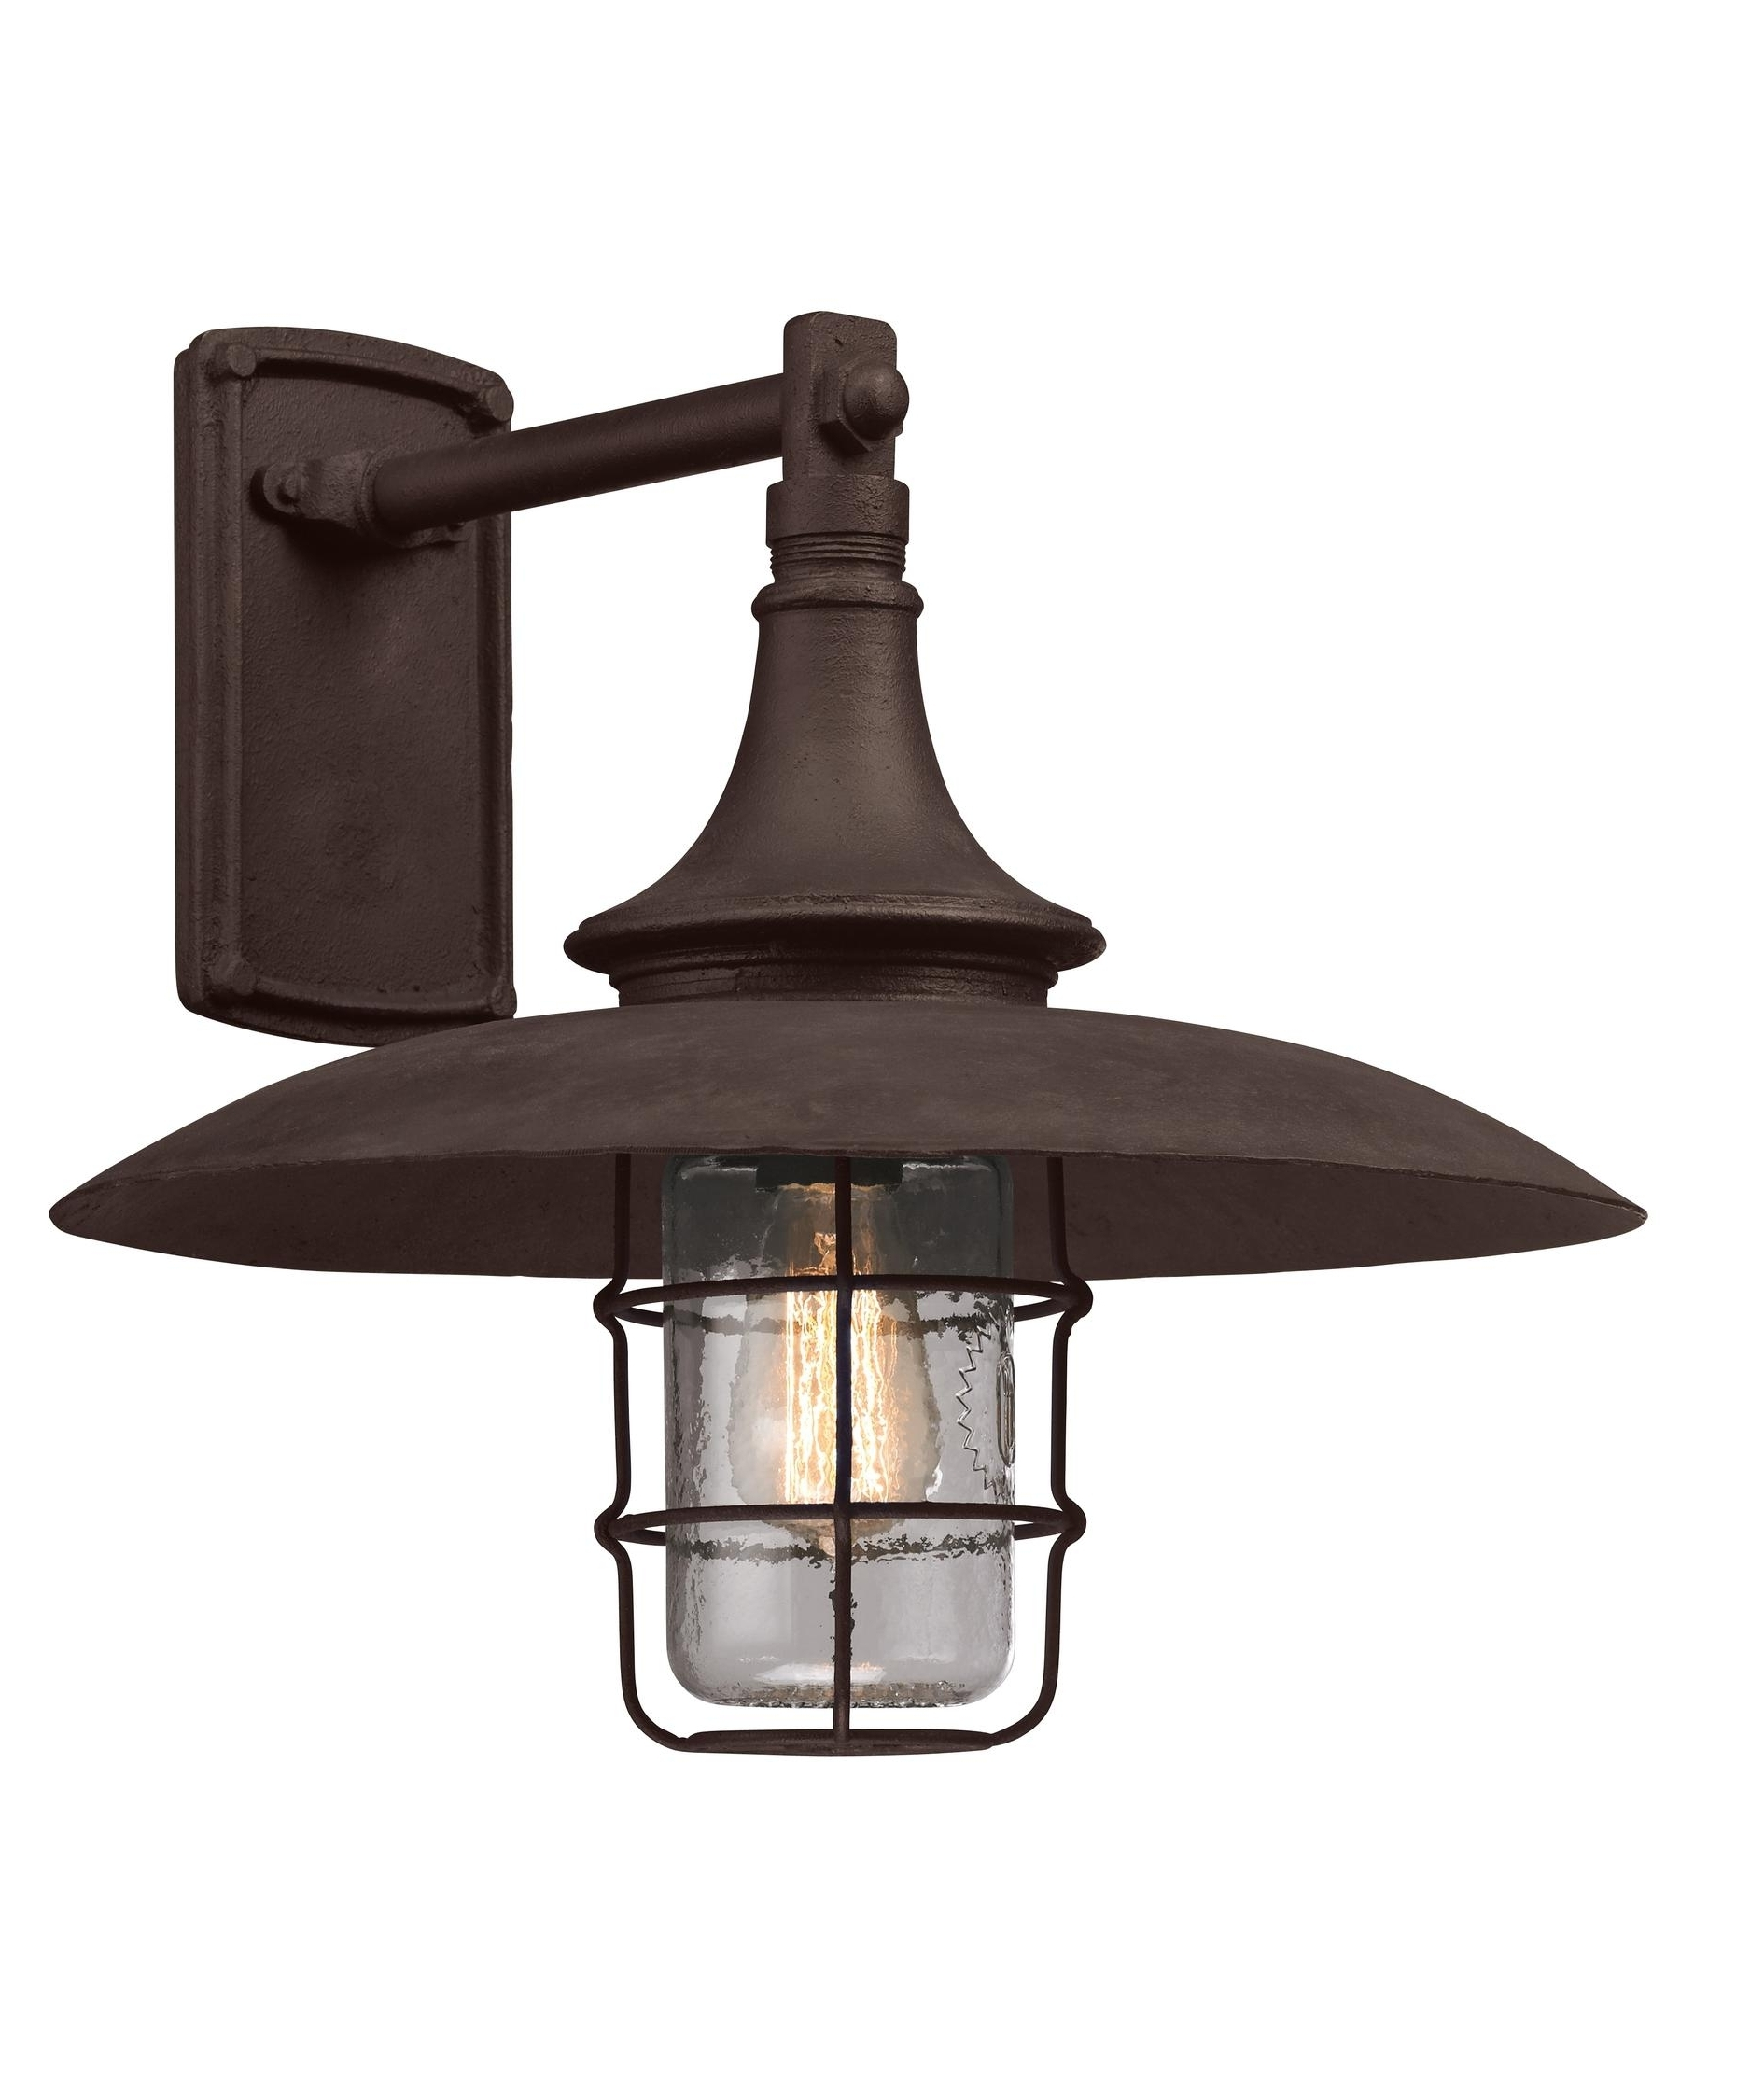 Vintage Outdoor Wall Lights Within 2018 Vintage Outdoor Light Fixtures • Outdoor Lighting (View 10 of 20)